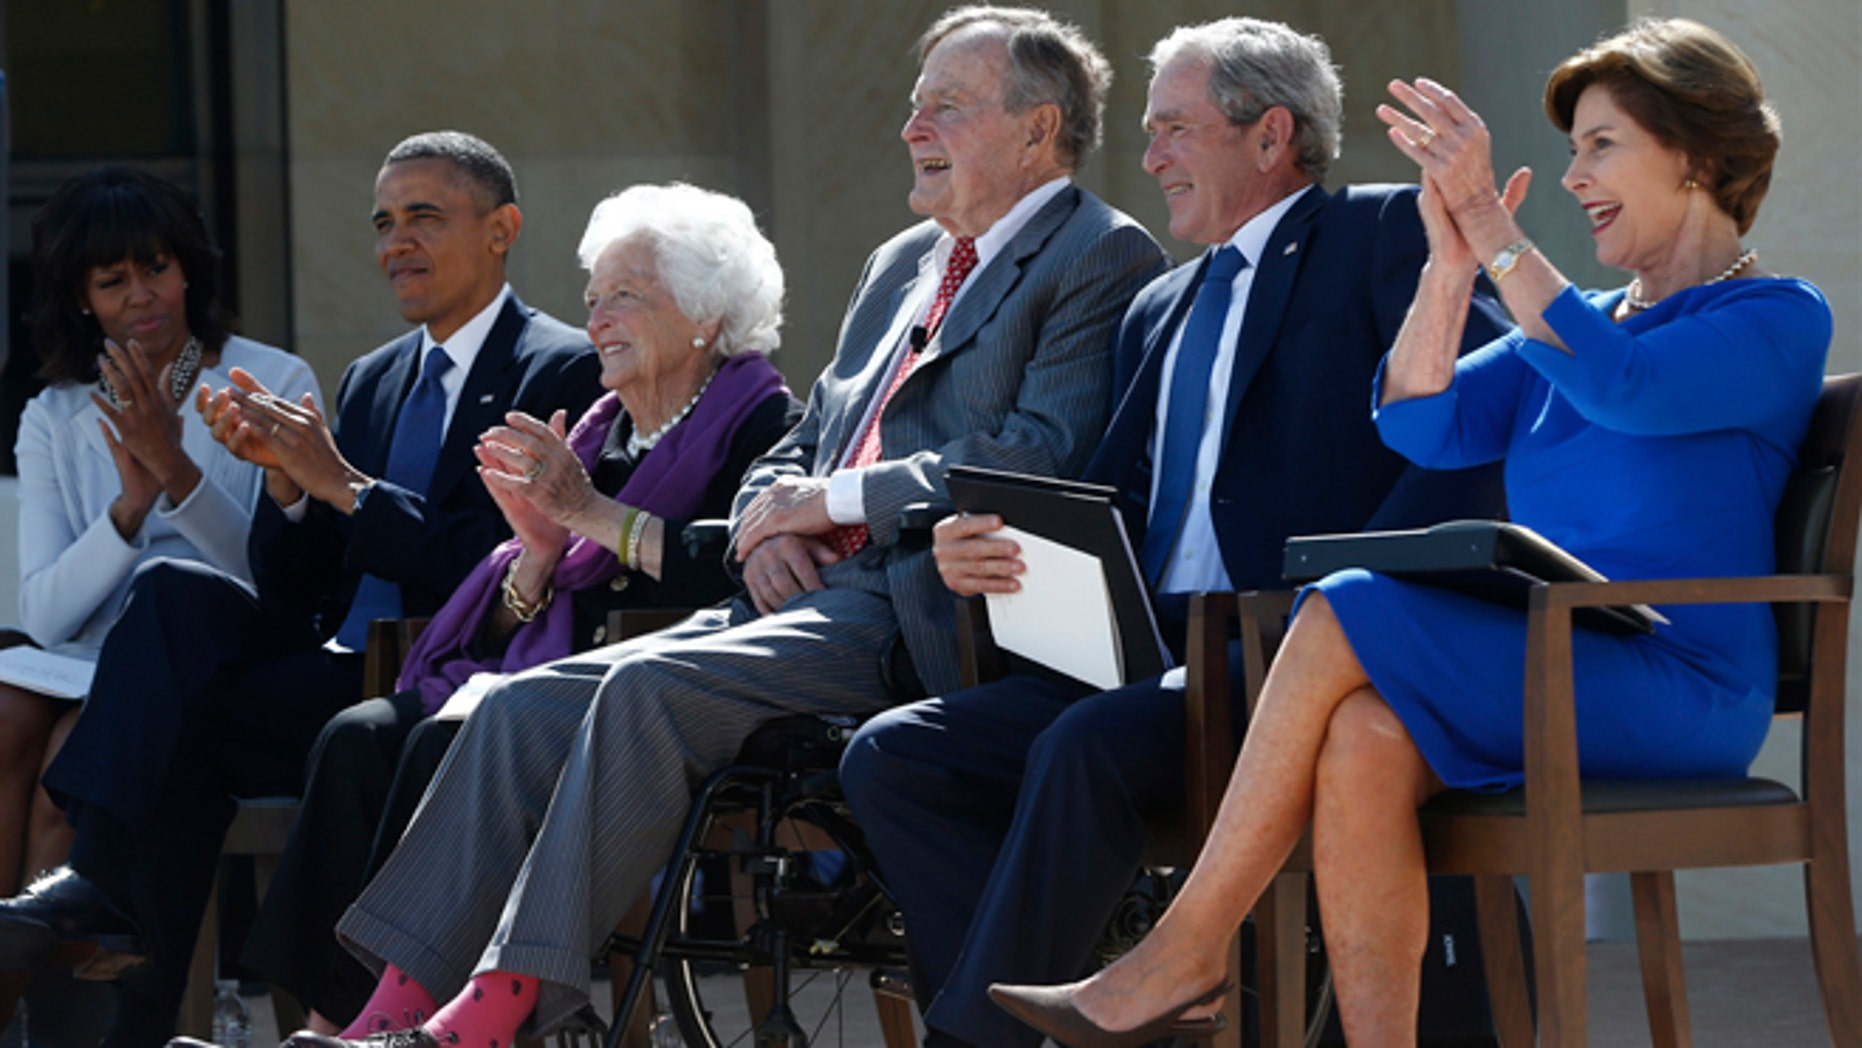 April 25, 2013: From left, President Barack Obama, first lady Michelle Obama, former first lady Barbara Bush, former Presidents George H.W. Bush, George W. Bush, and former first lady Laura Bush take part in the dedication of the George W. Bush presidential library on the campus of Southern Methodist University in Dallas.